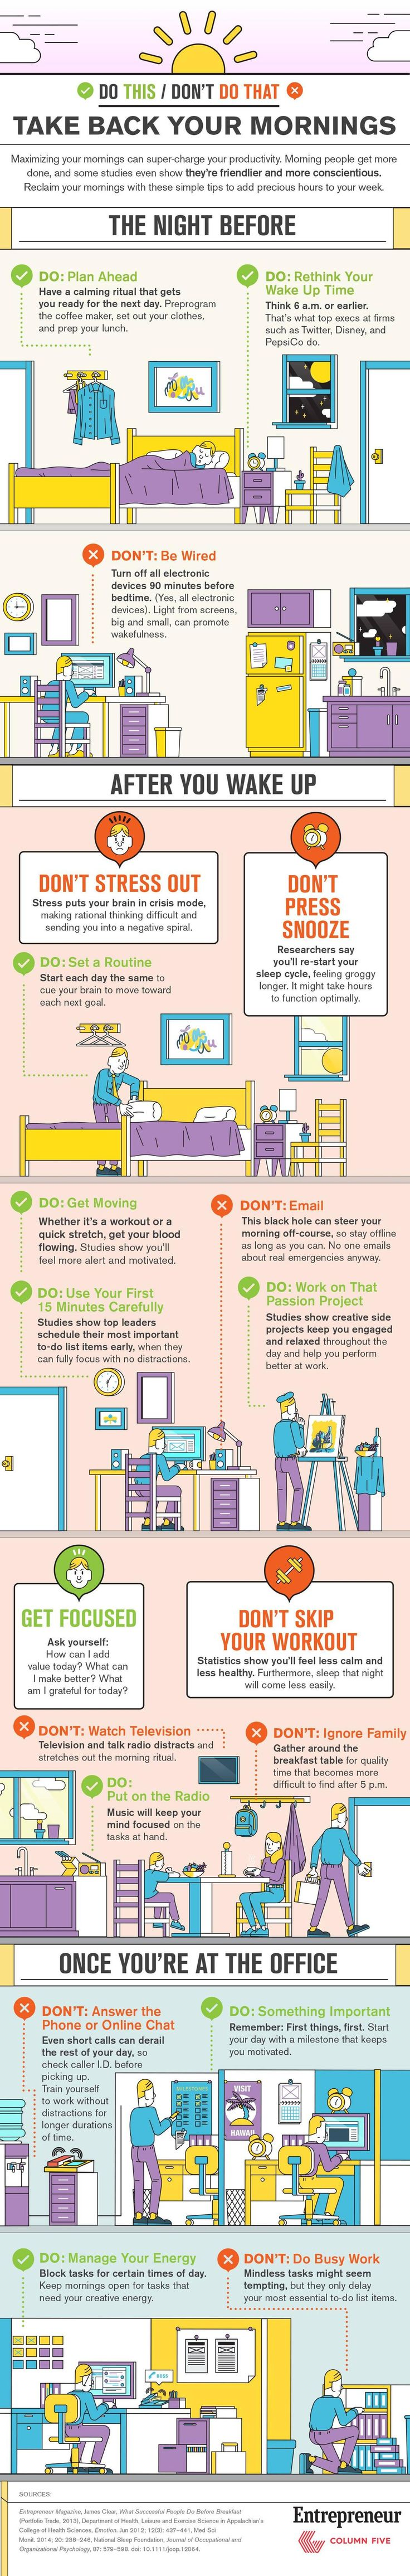 Take back your Mornings Infographic - From the night before till you walk out the door, there are tips to help you get up and get going.